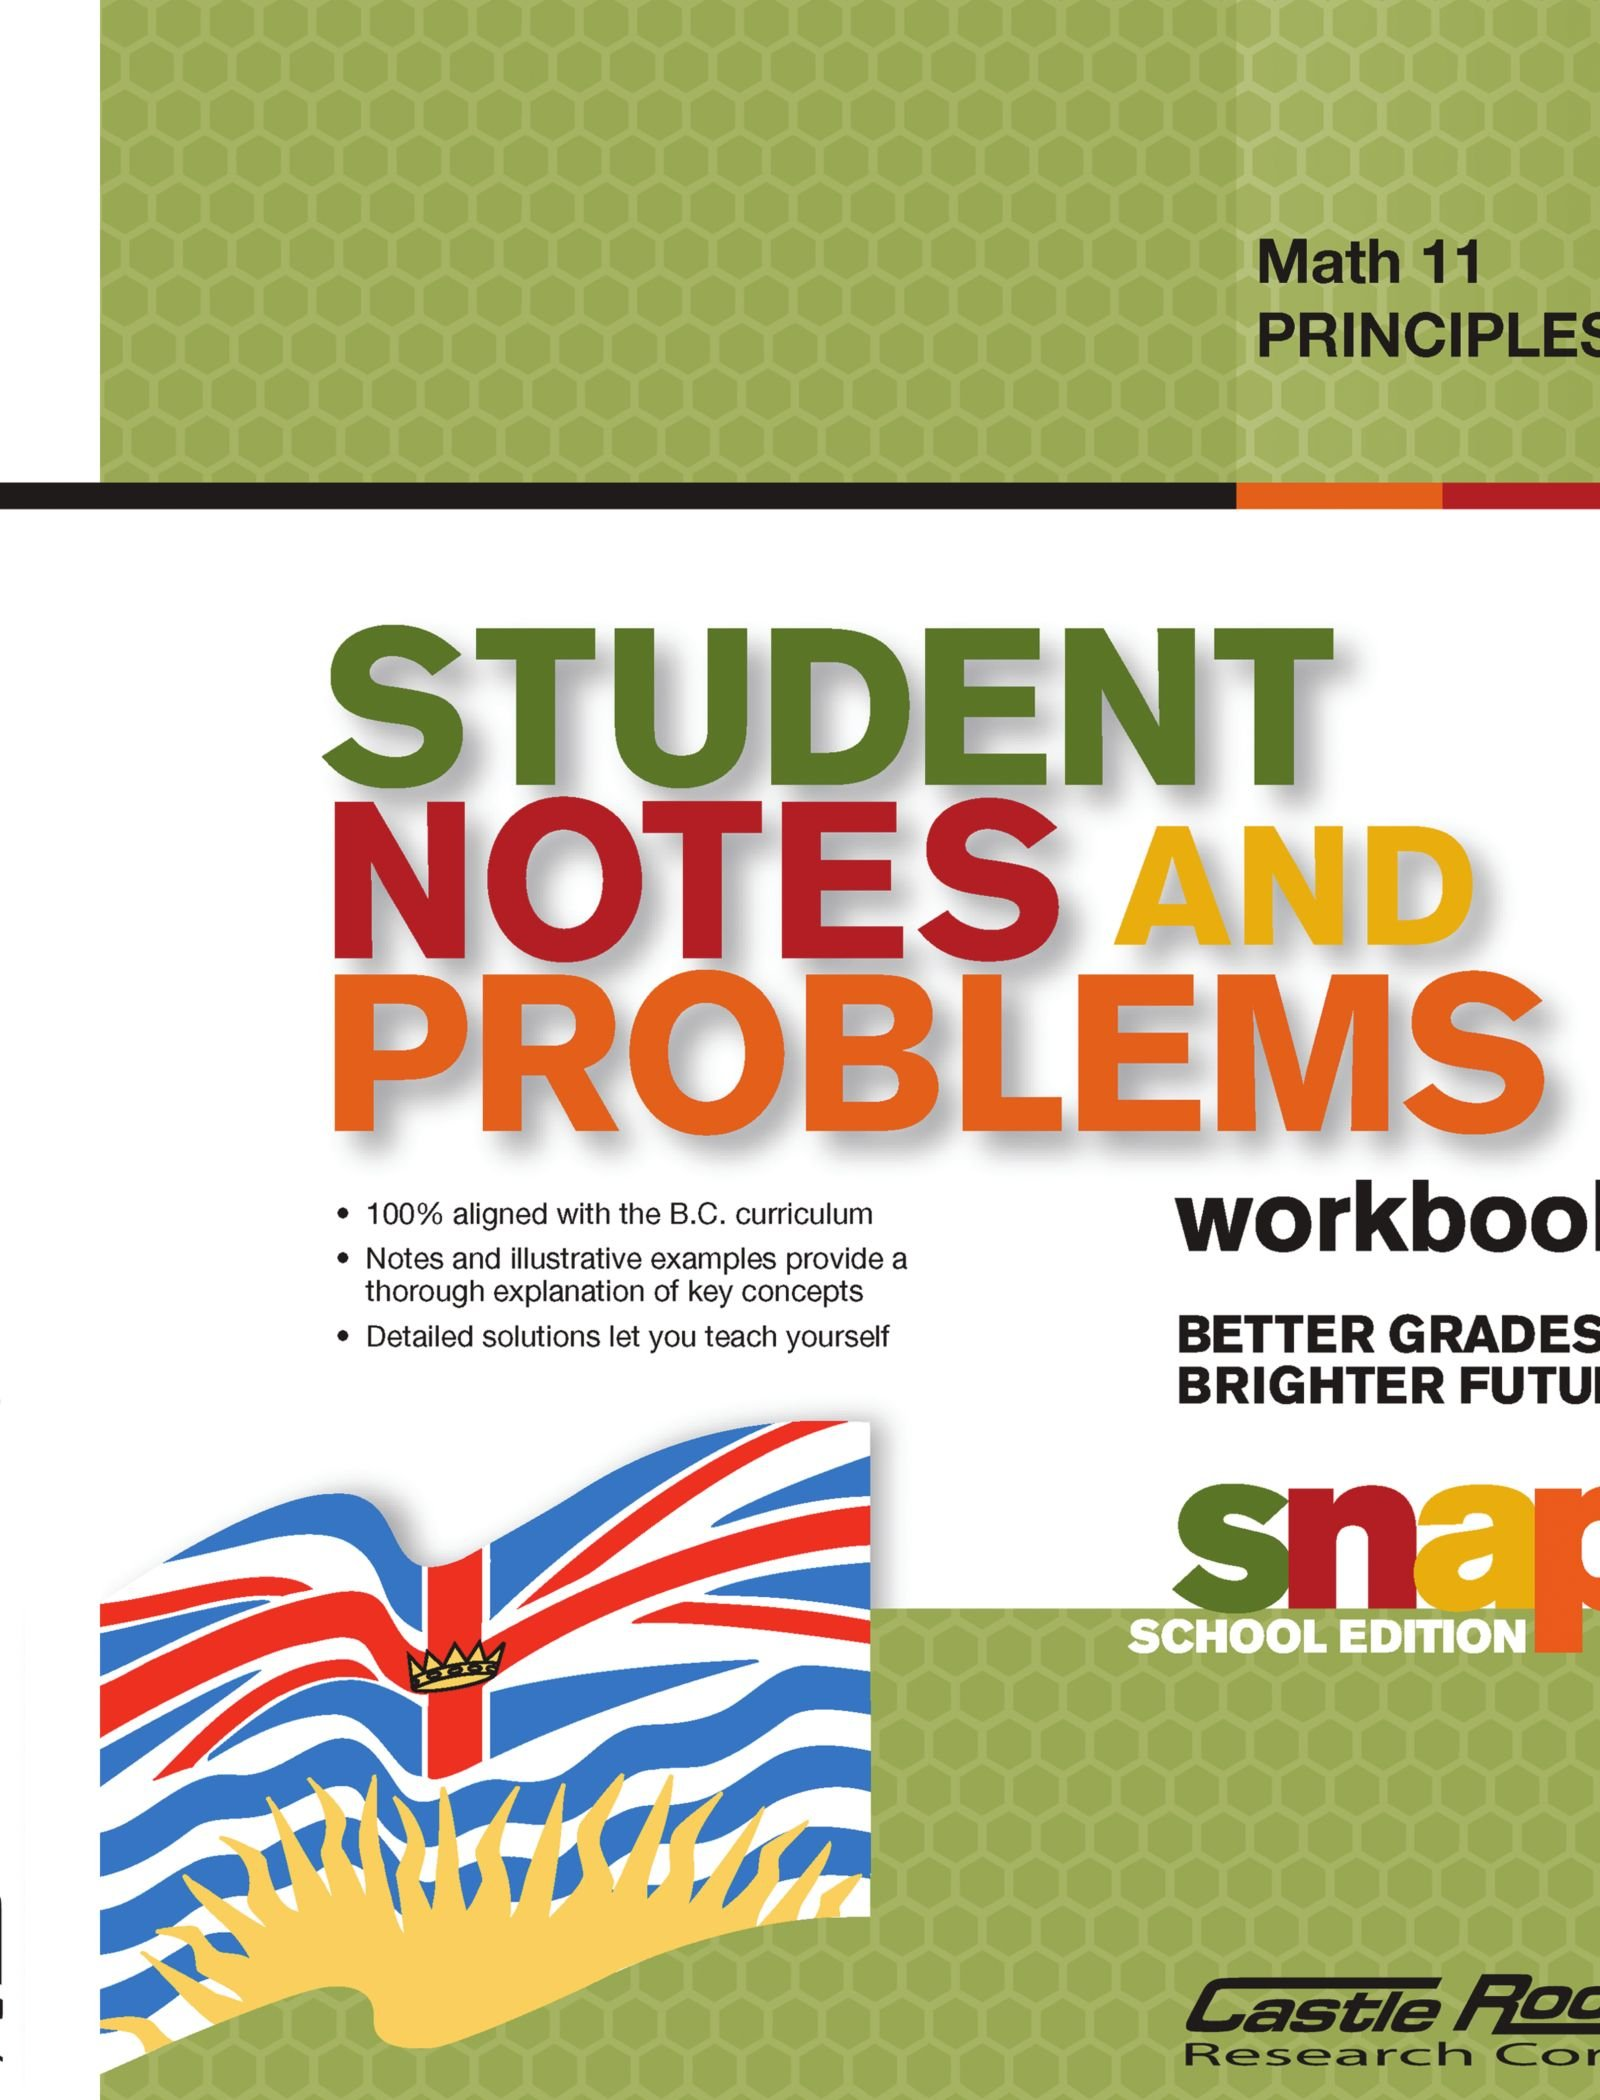 Read Online Student Notes and Problems Principles of Math 11 pdf